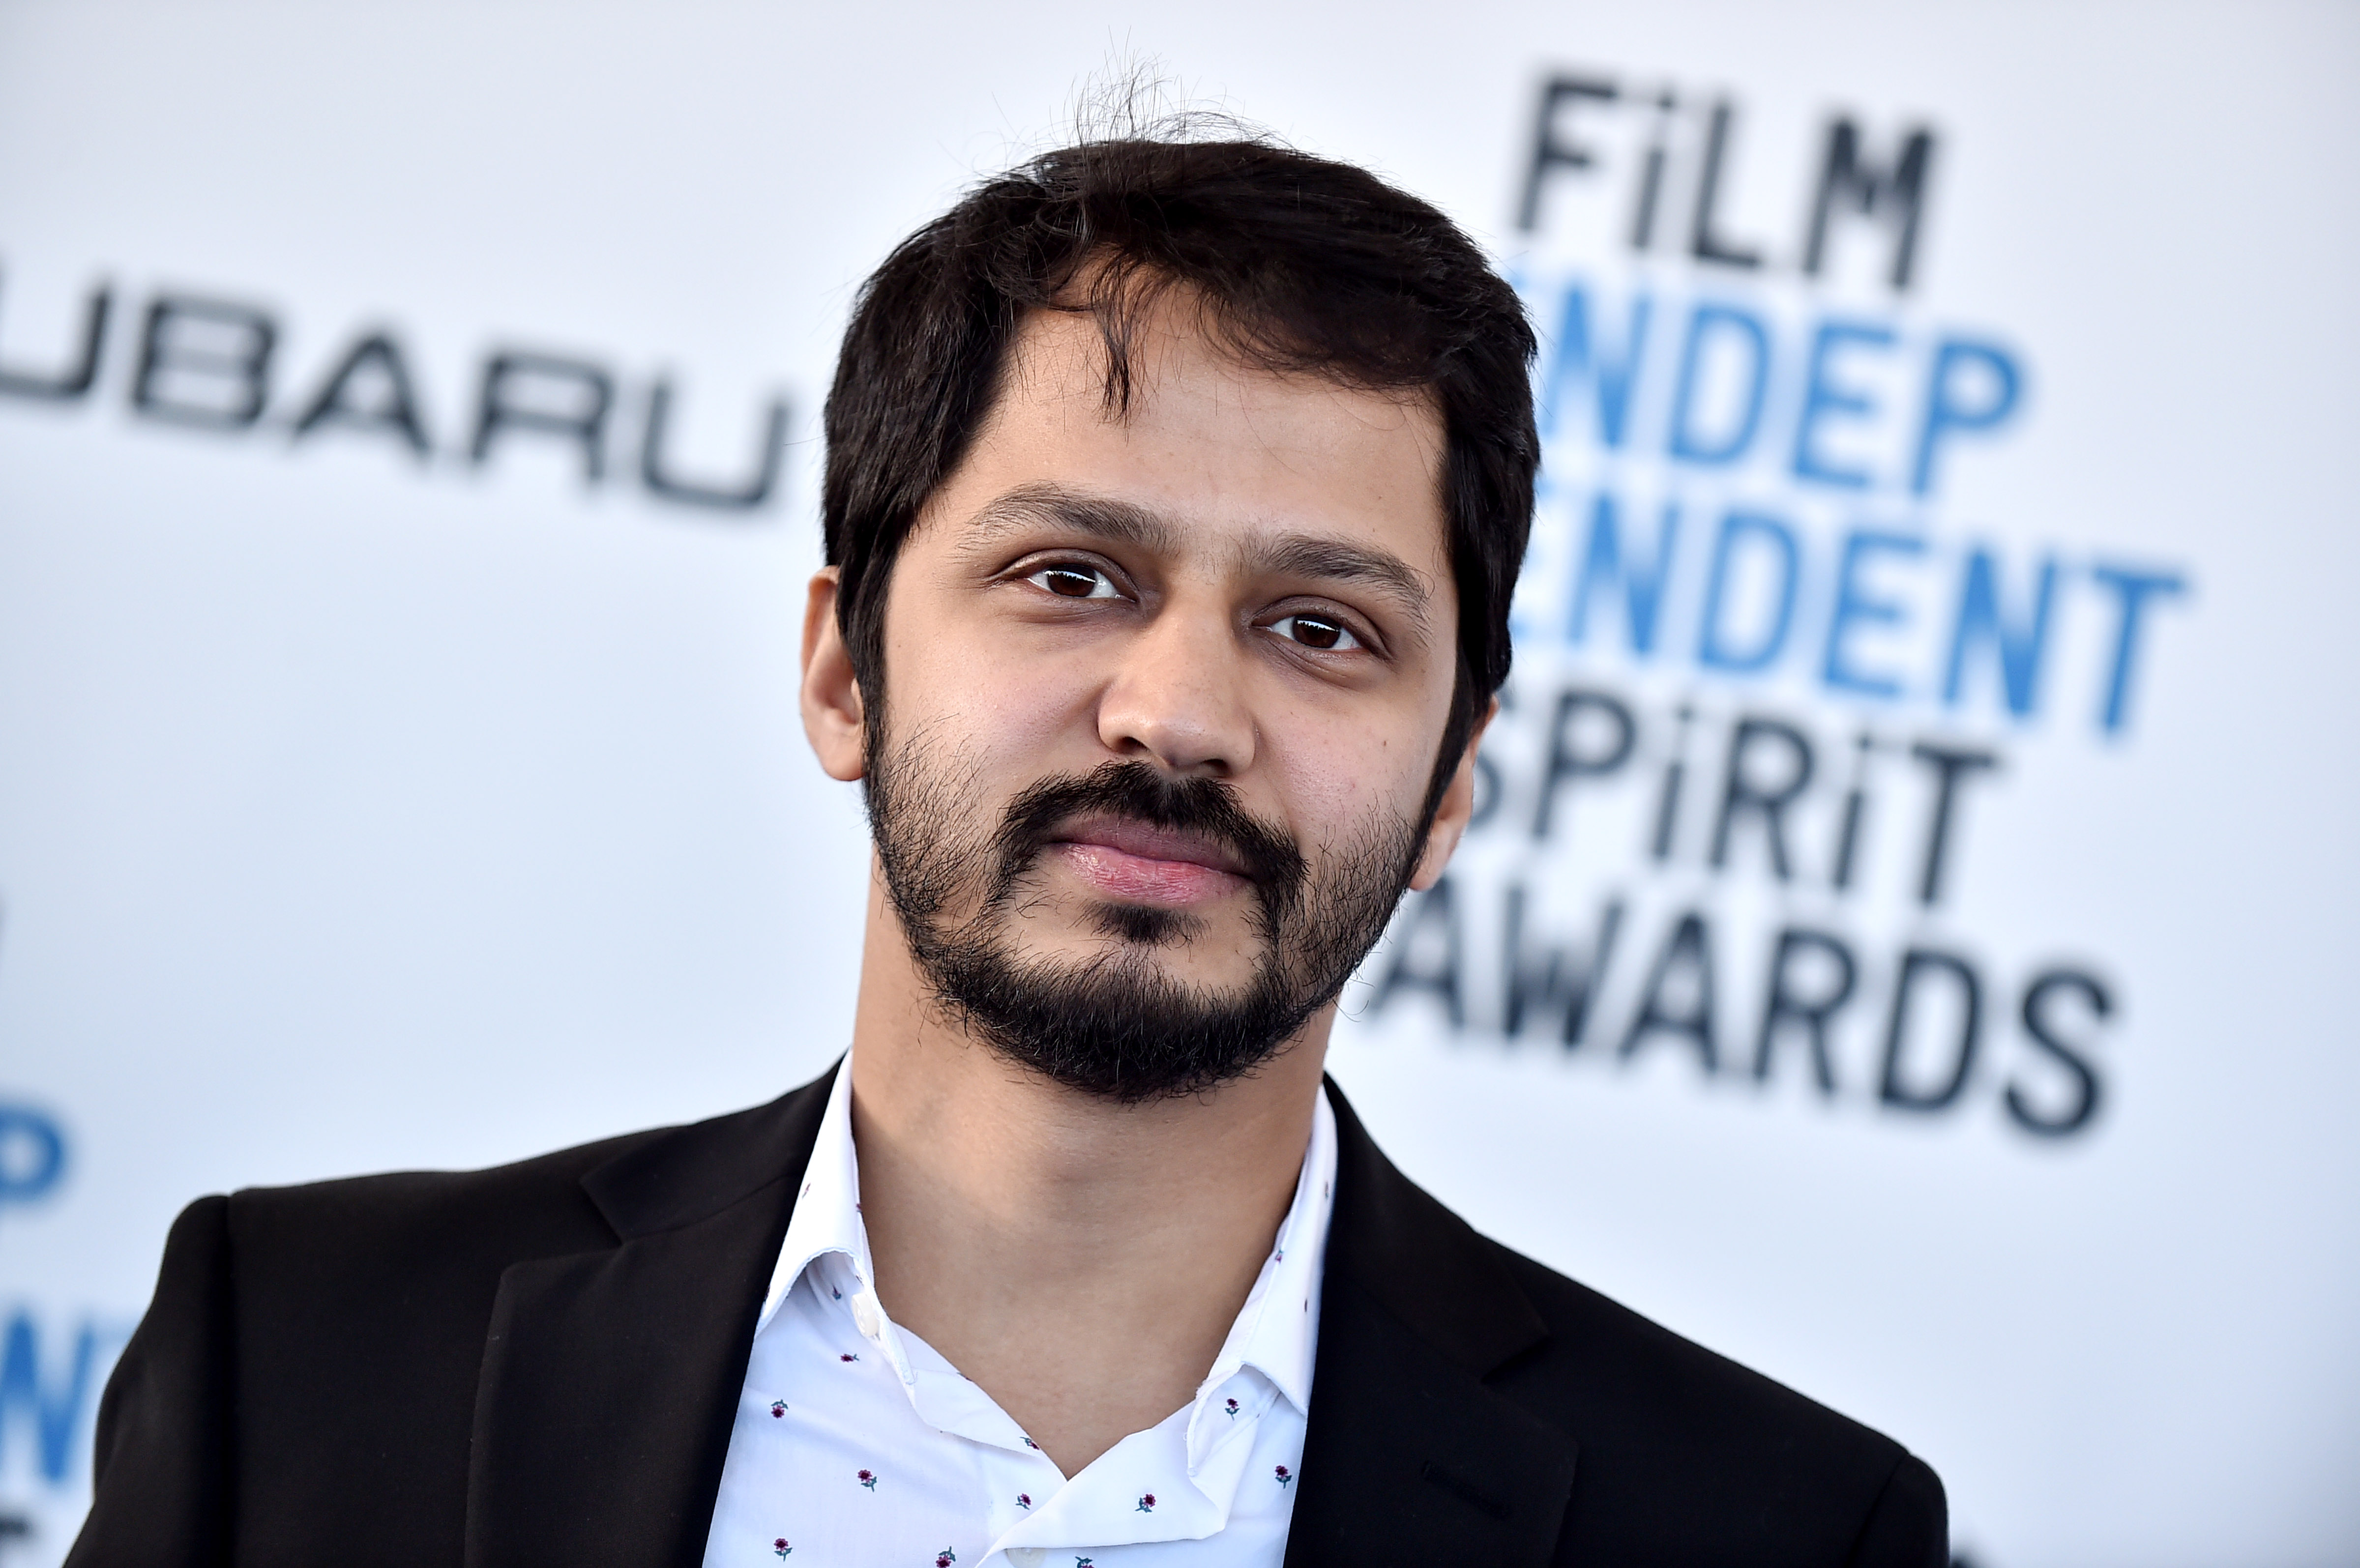 Shrihari Sathe, Filmaker34th Film Independent Spirit Awards, Los Angeles, USA - 23 Feb 2019